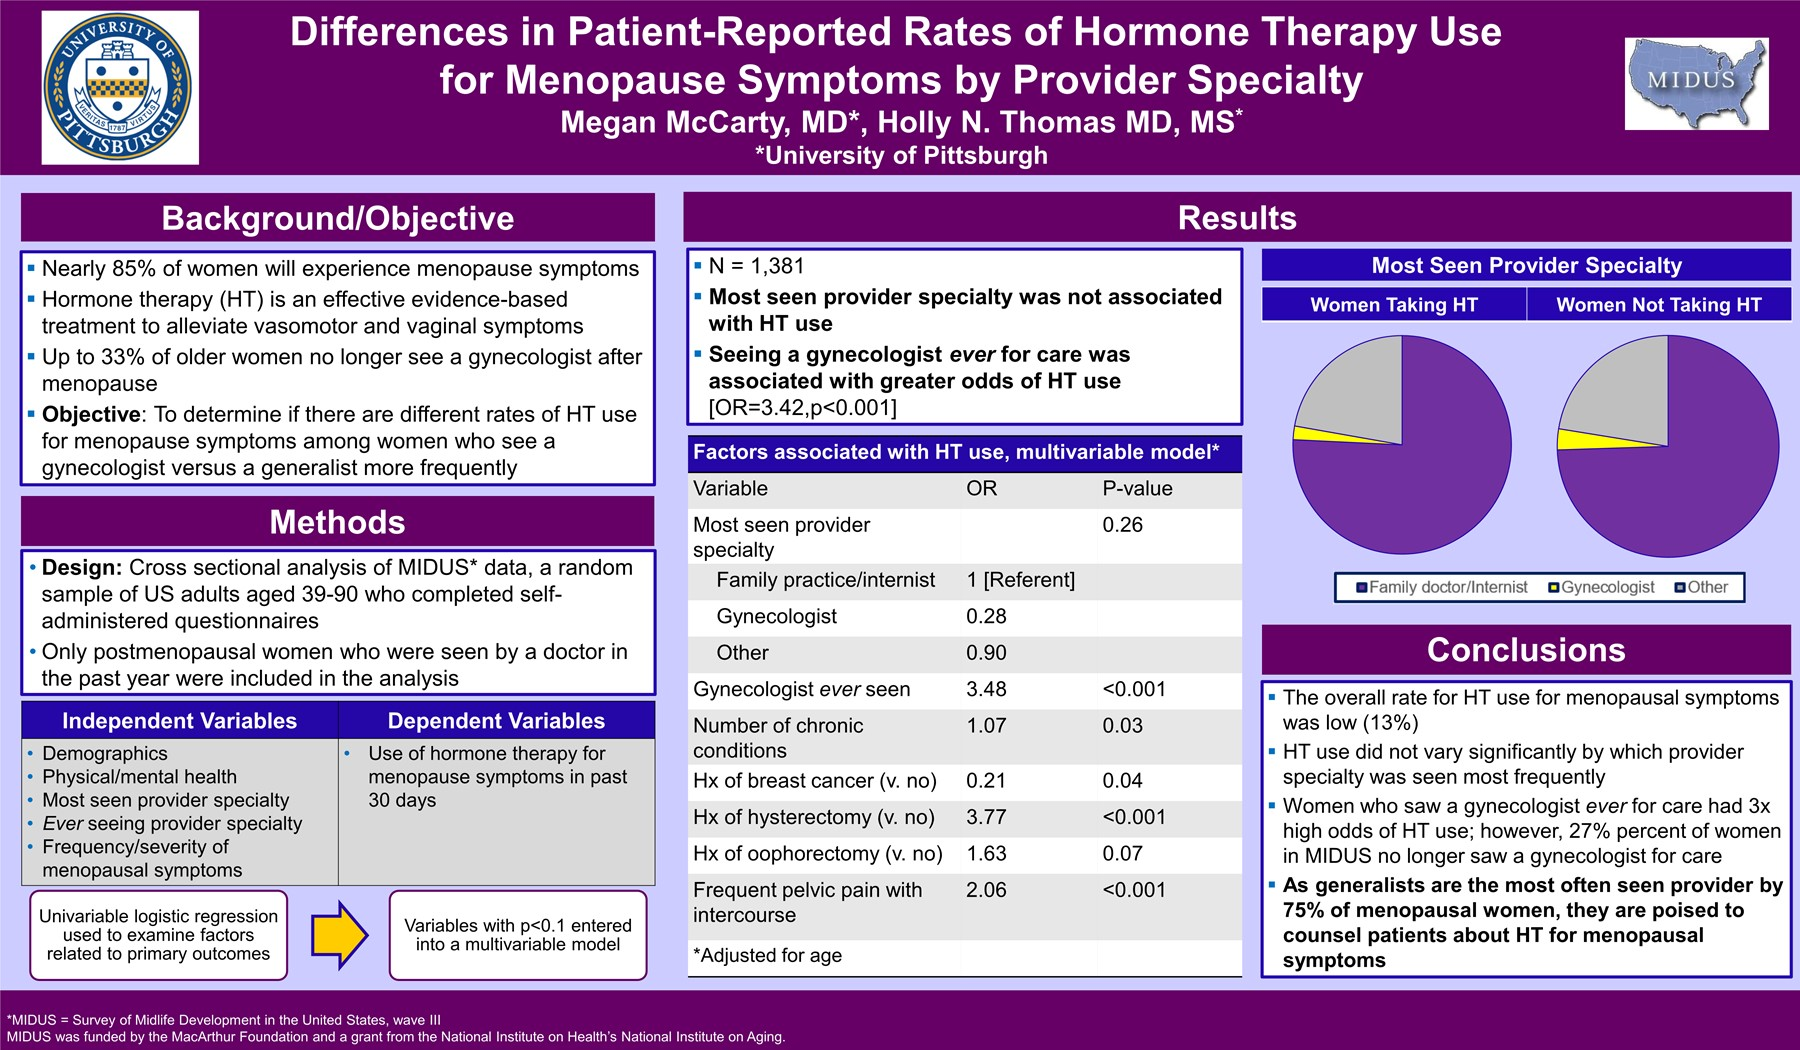 Differences in patient-reported rates of hormone therapy use by provider specialty